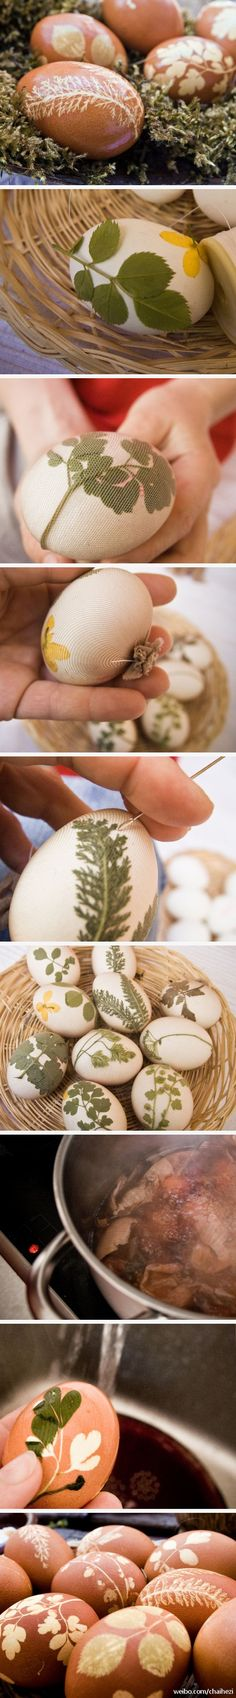 Naturally dyed Eggs.  It looks like they are boiled with onion skins? Very pretty. :)